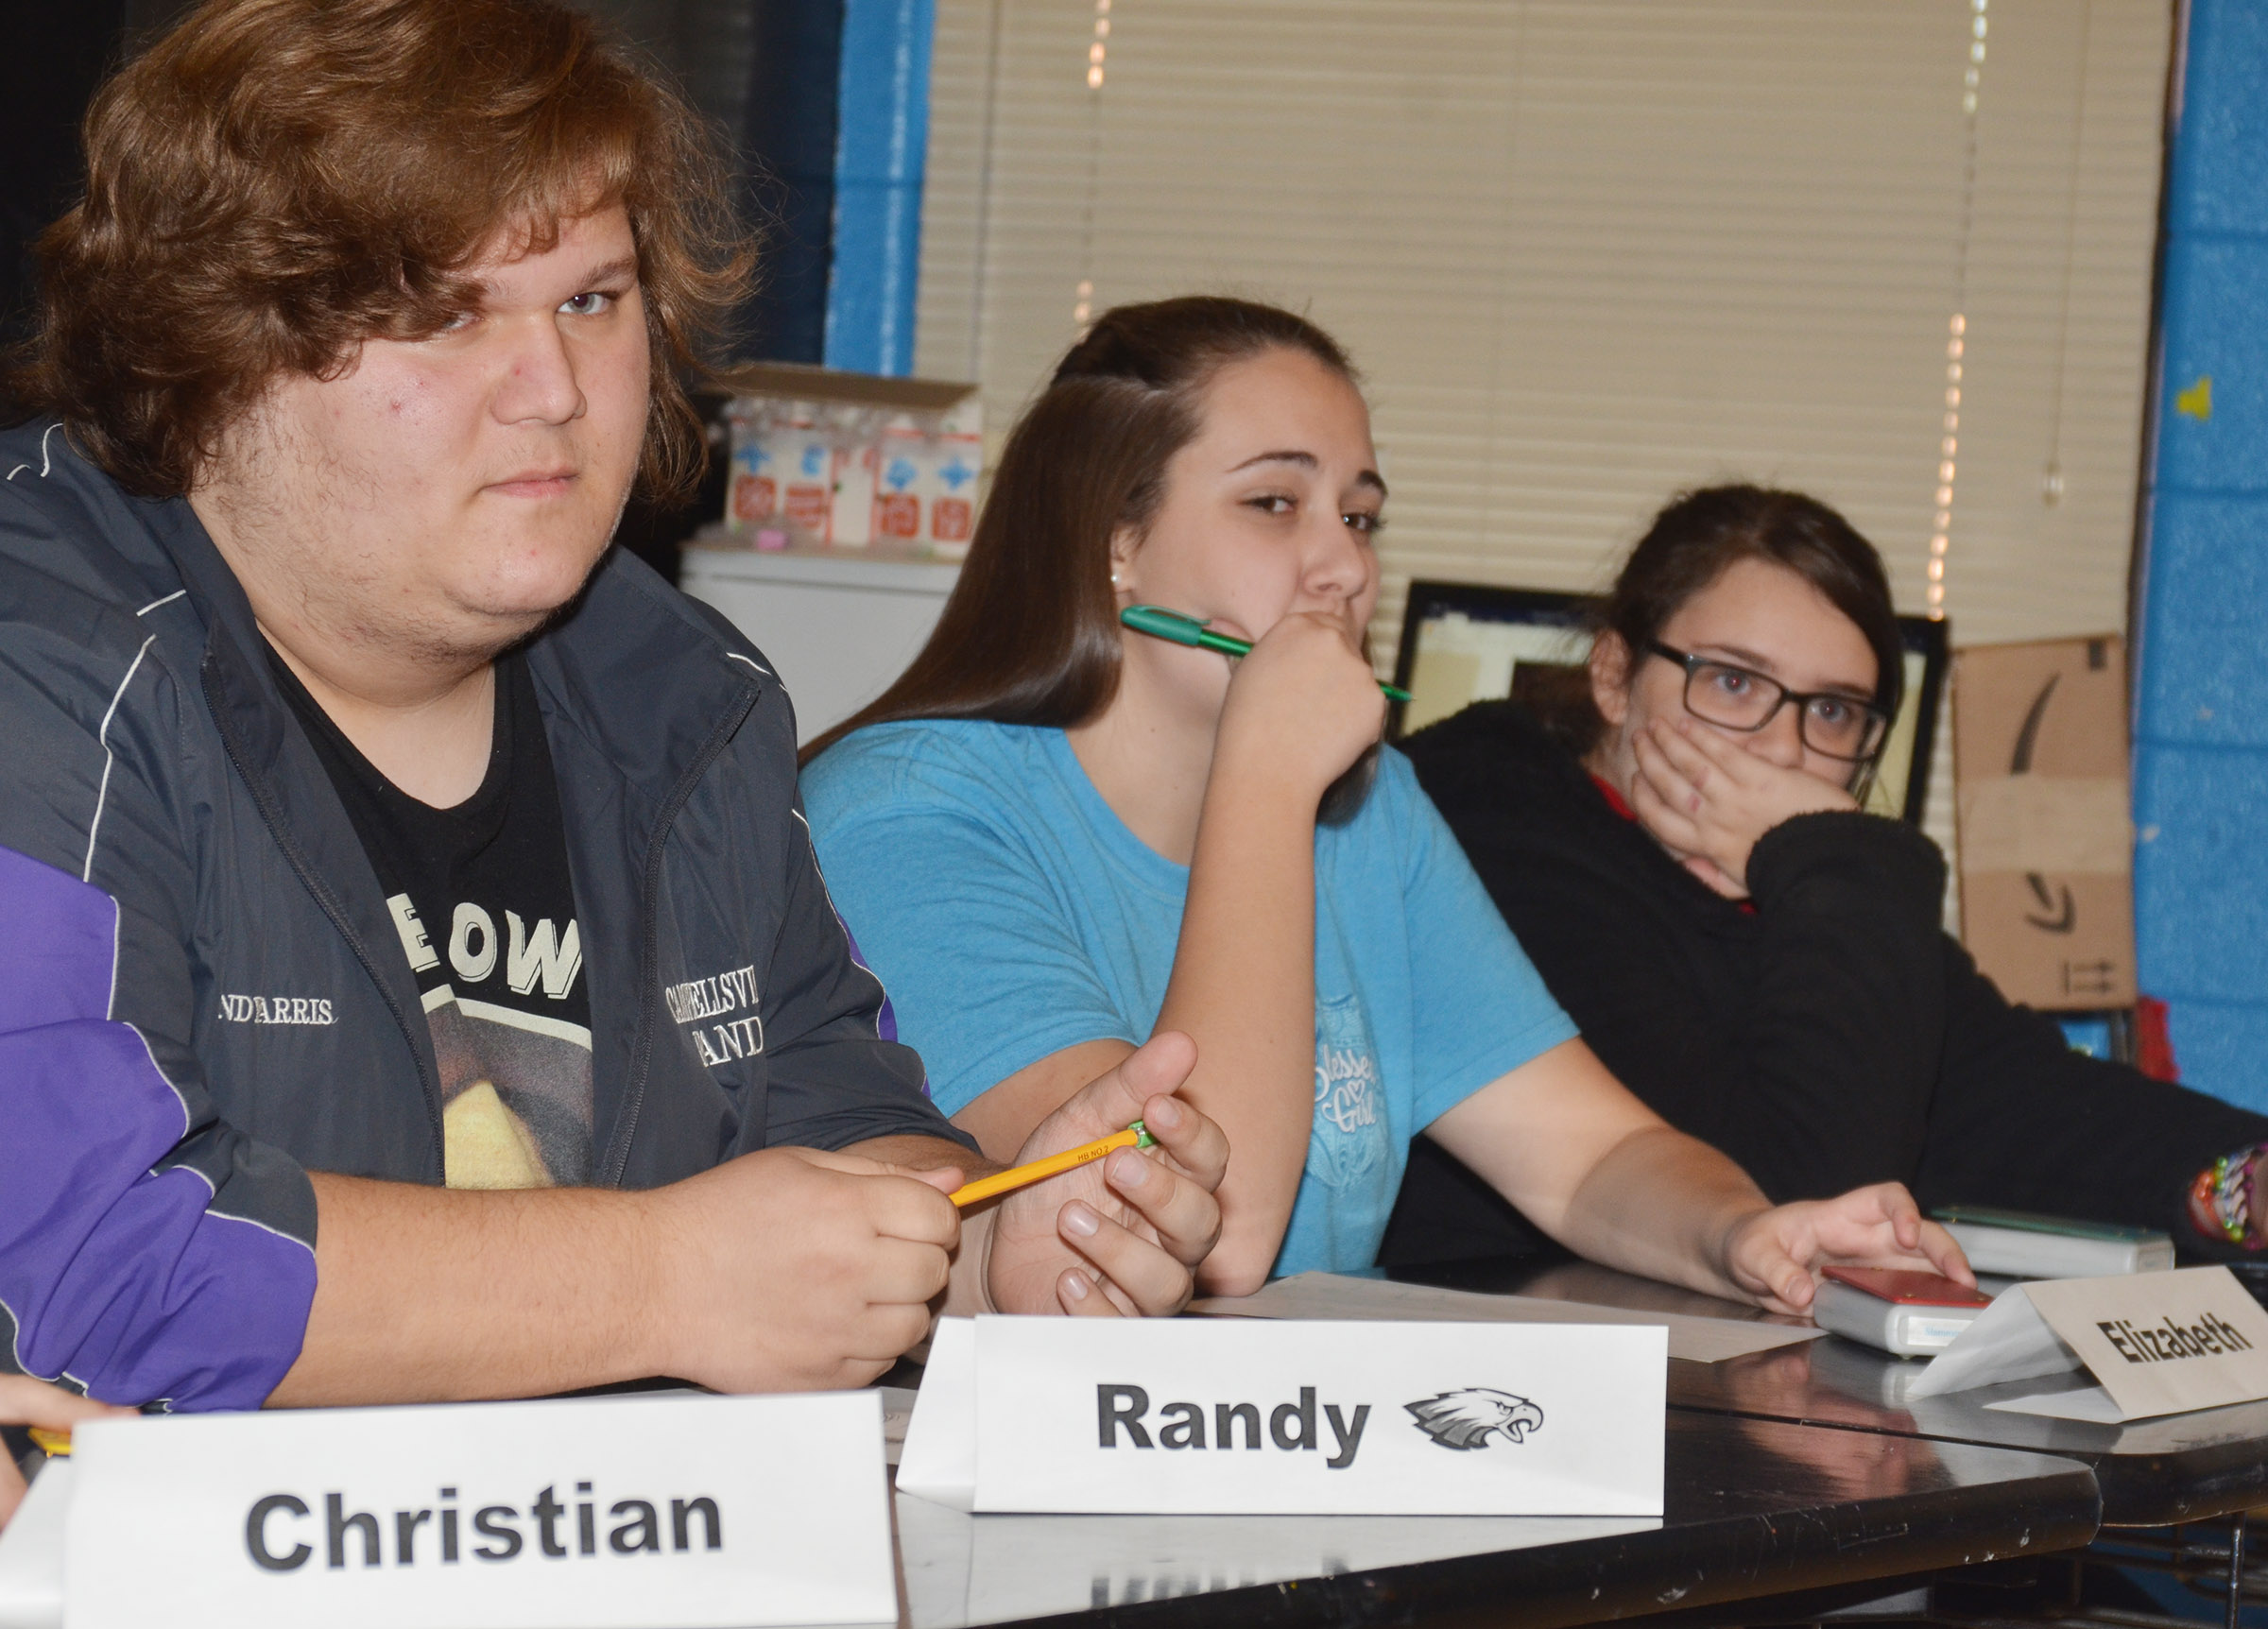 CHS academic team members, from left, juniors Randy Harris and Elizabeth Sullivan and freshman Haley Lopez listen to a question.